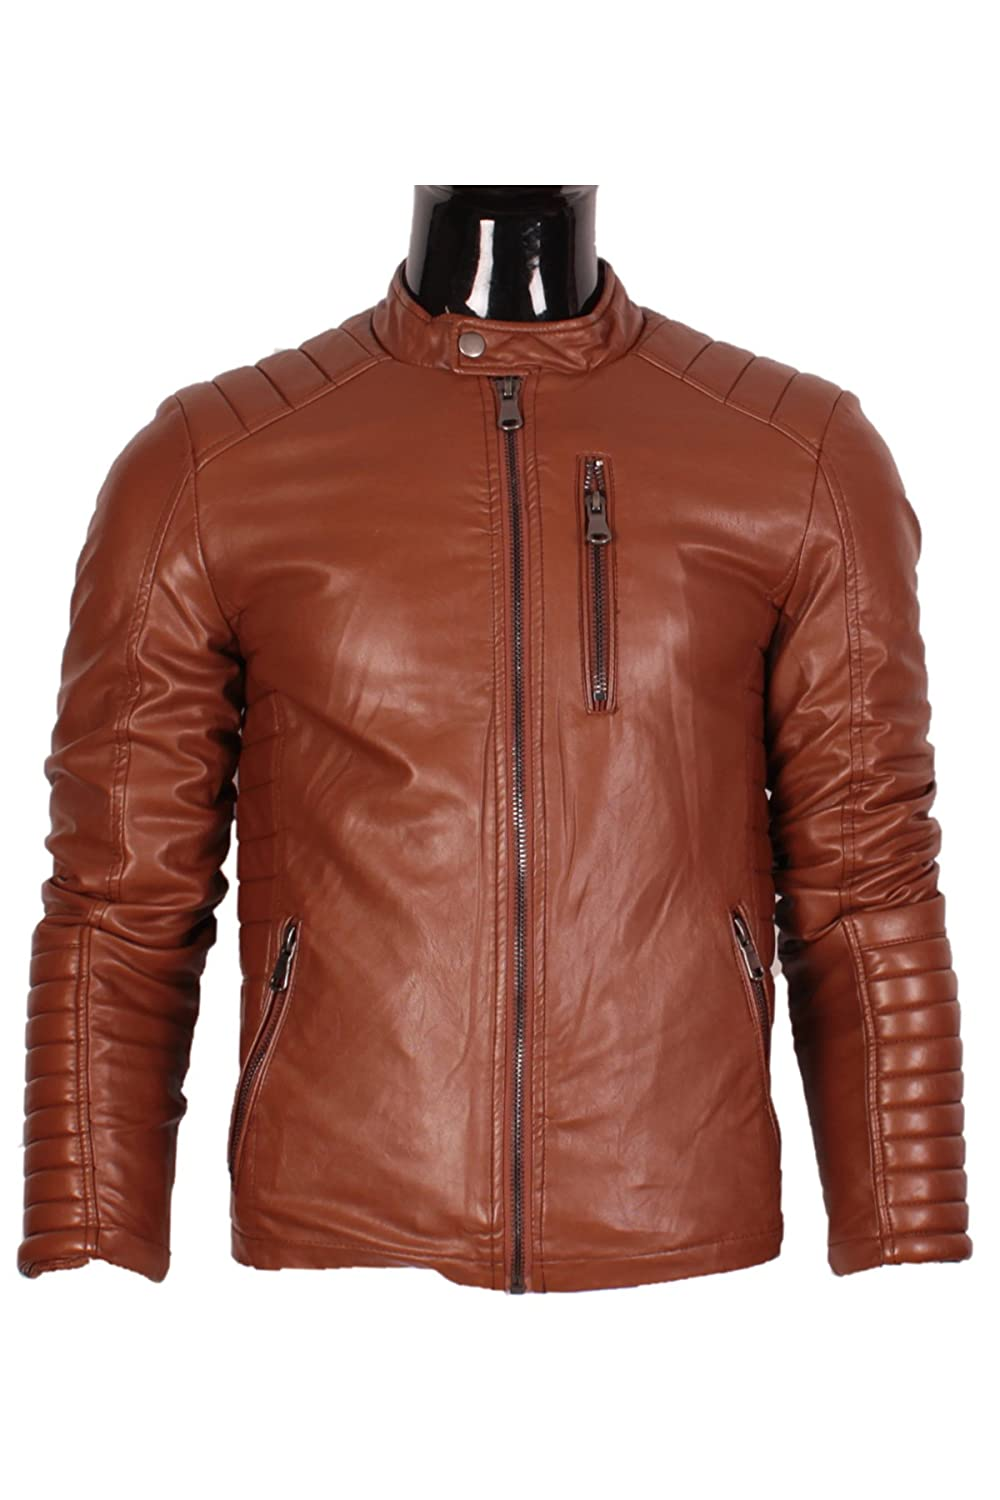 Mentex Men's Jacket Brown Camel